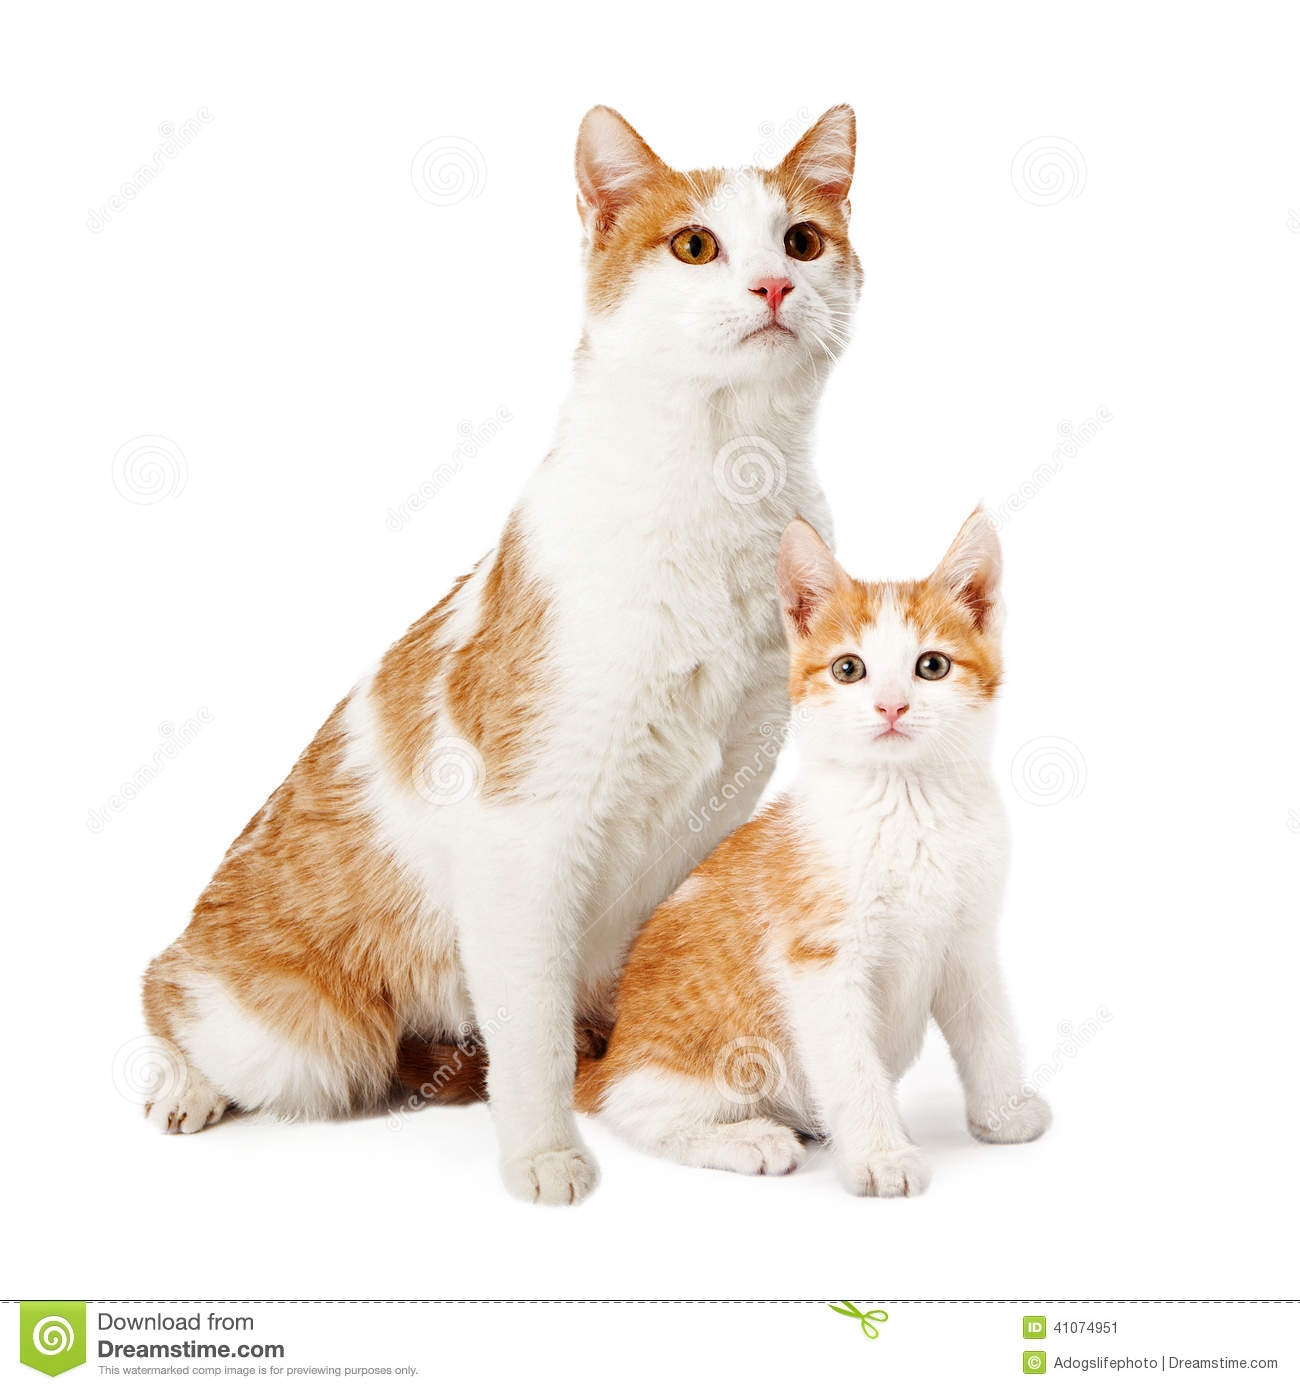 cat and kitten clipart 22ef6804d731b60b5da335d44172e434 cats and.